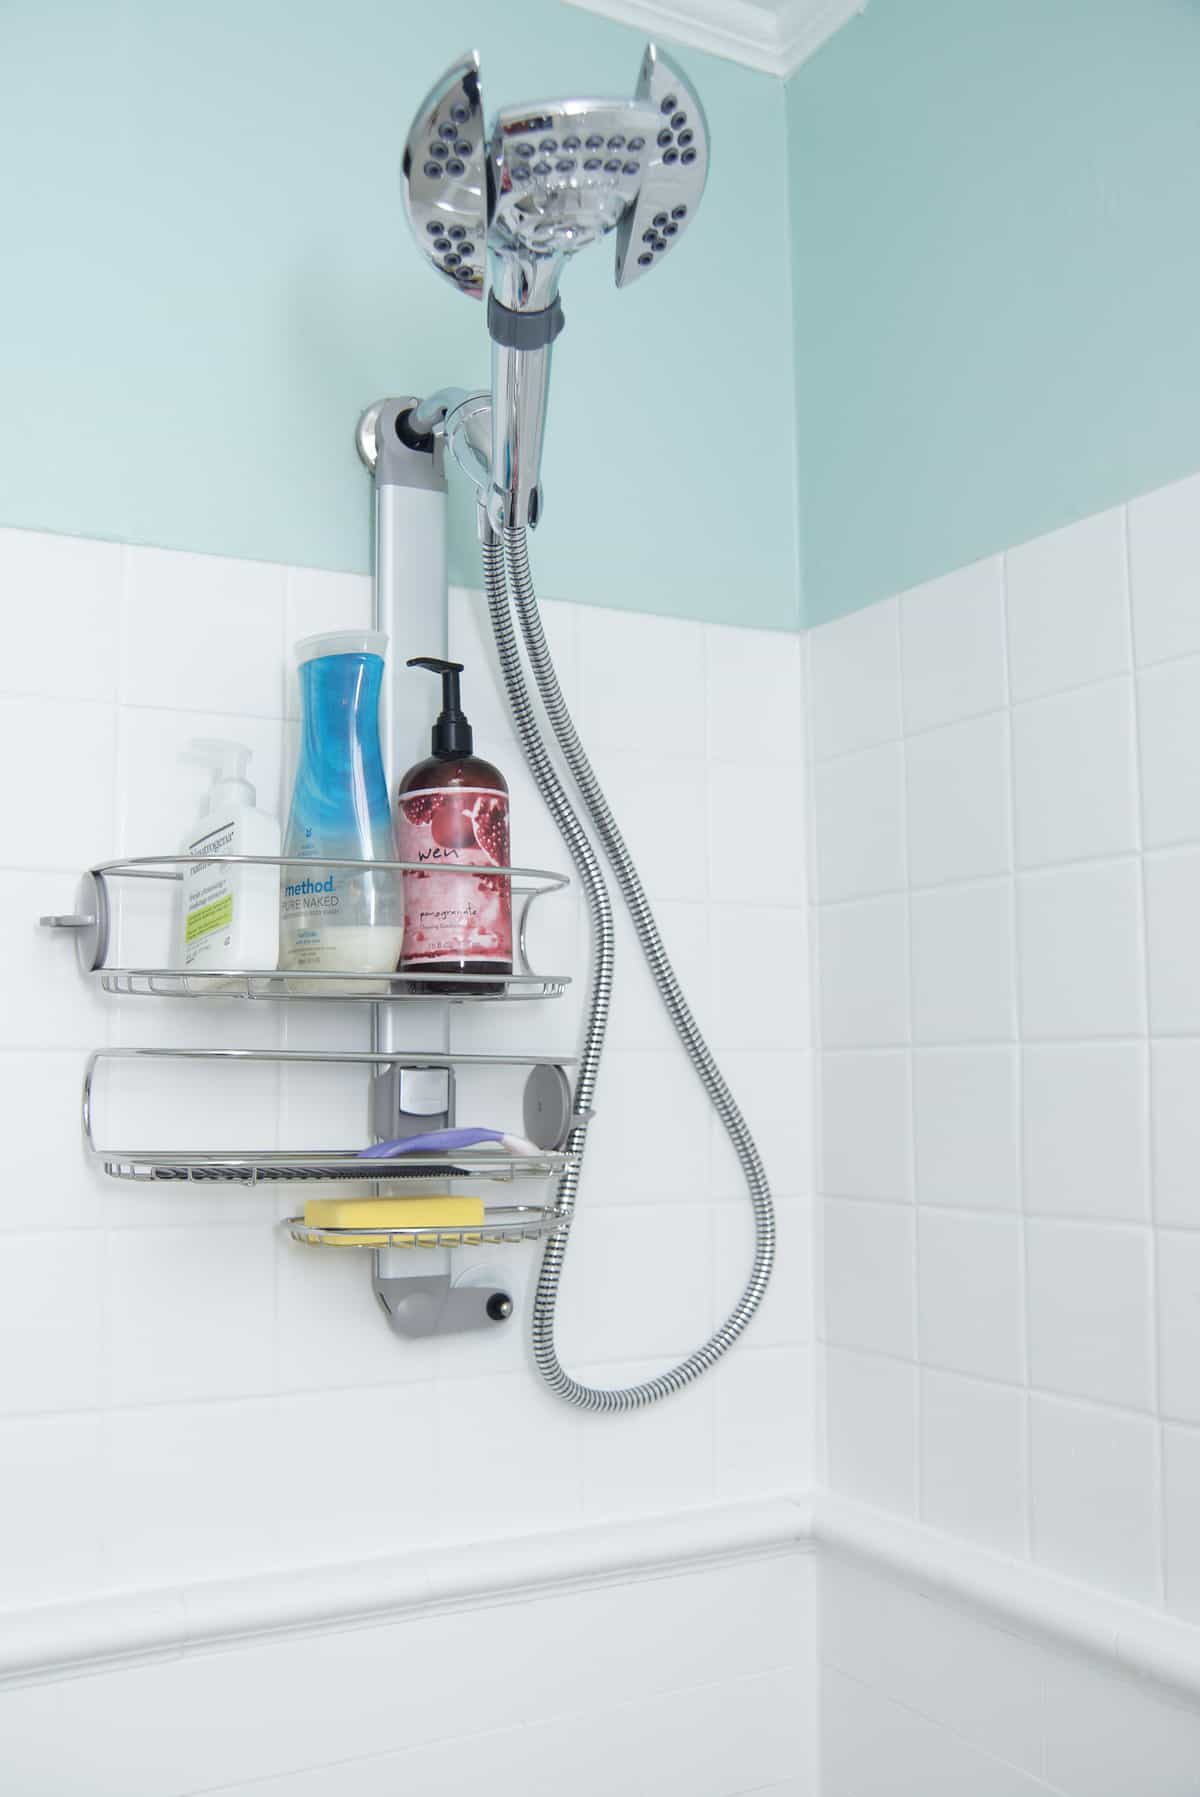 April Showers and Other Easy Bathroom Updates | HeartWork Organizing ...